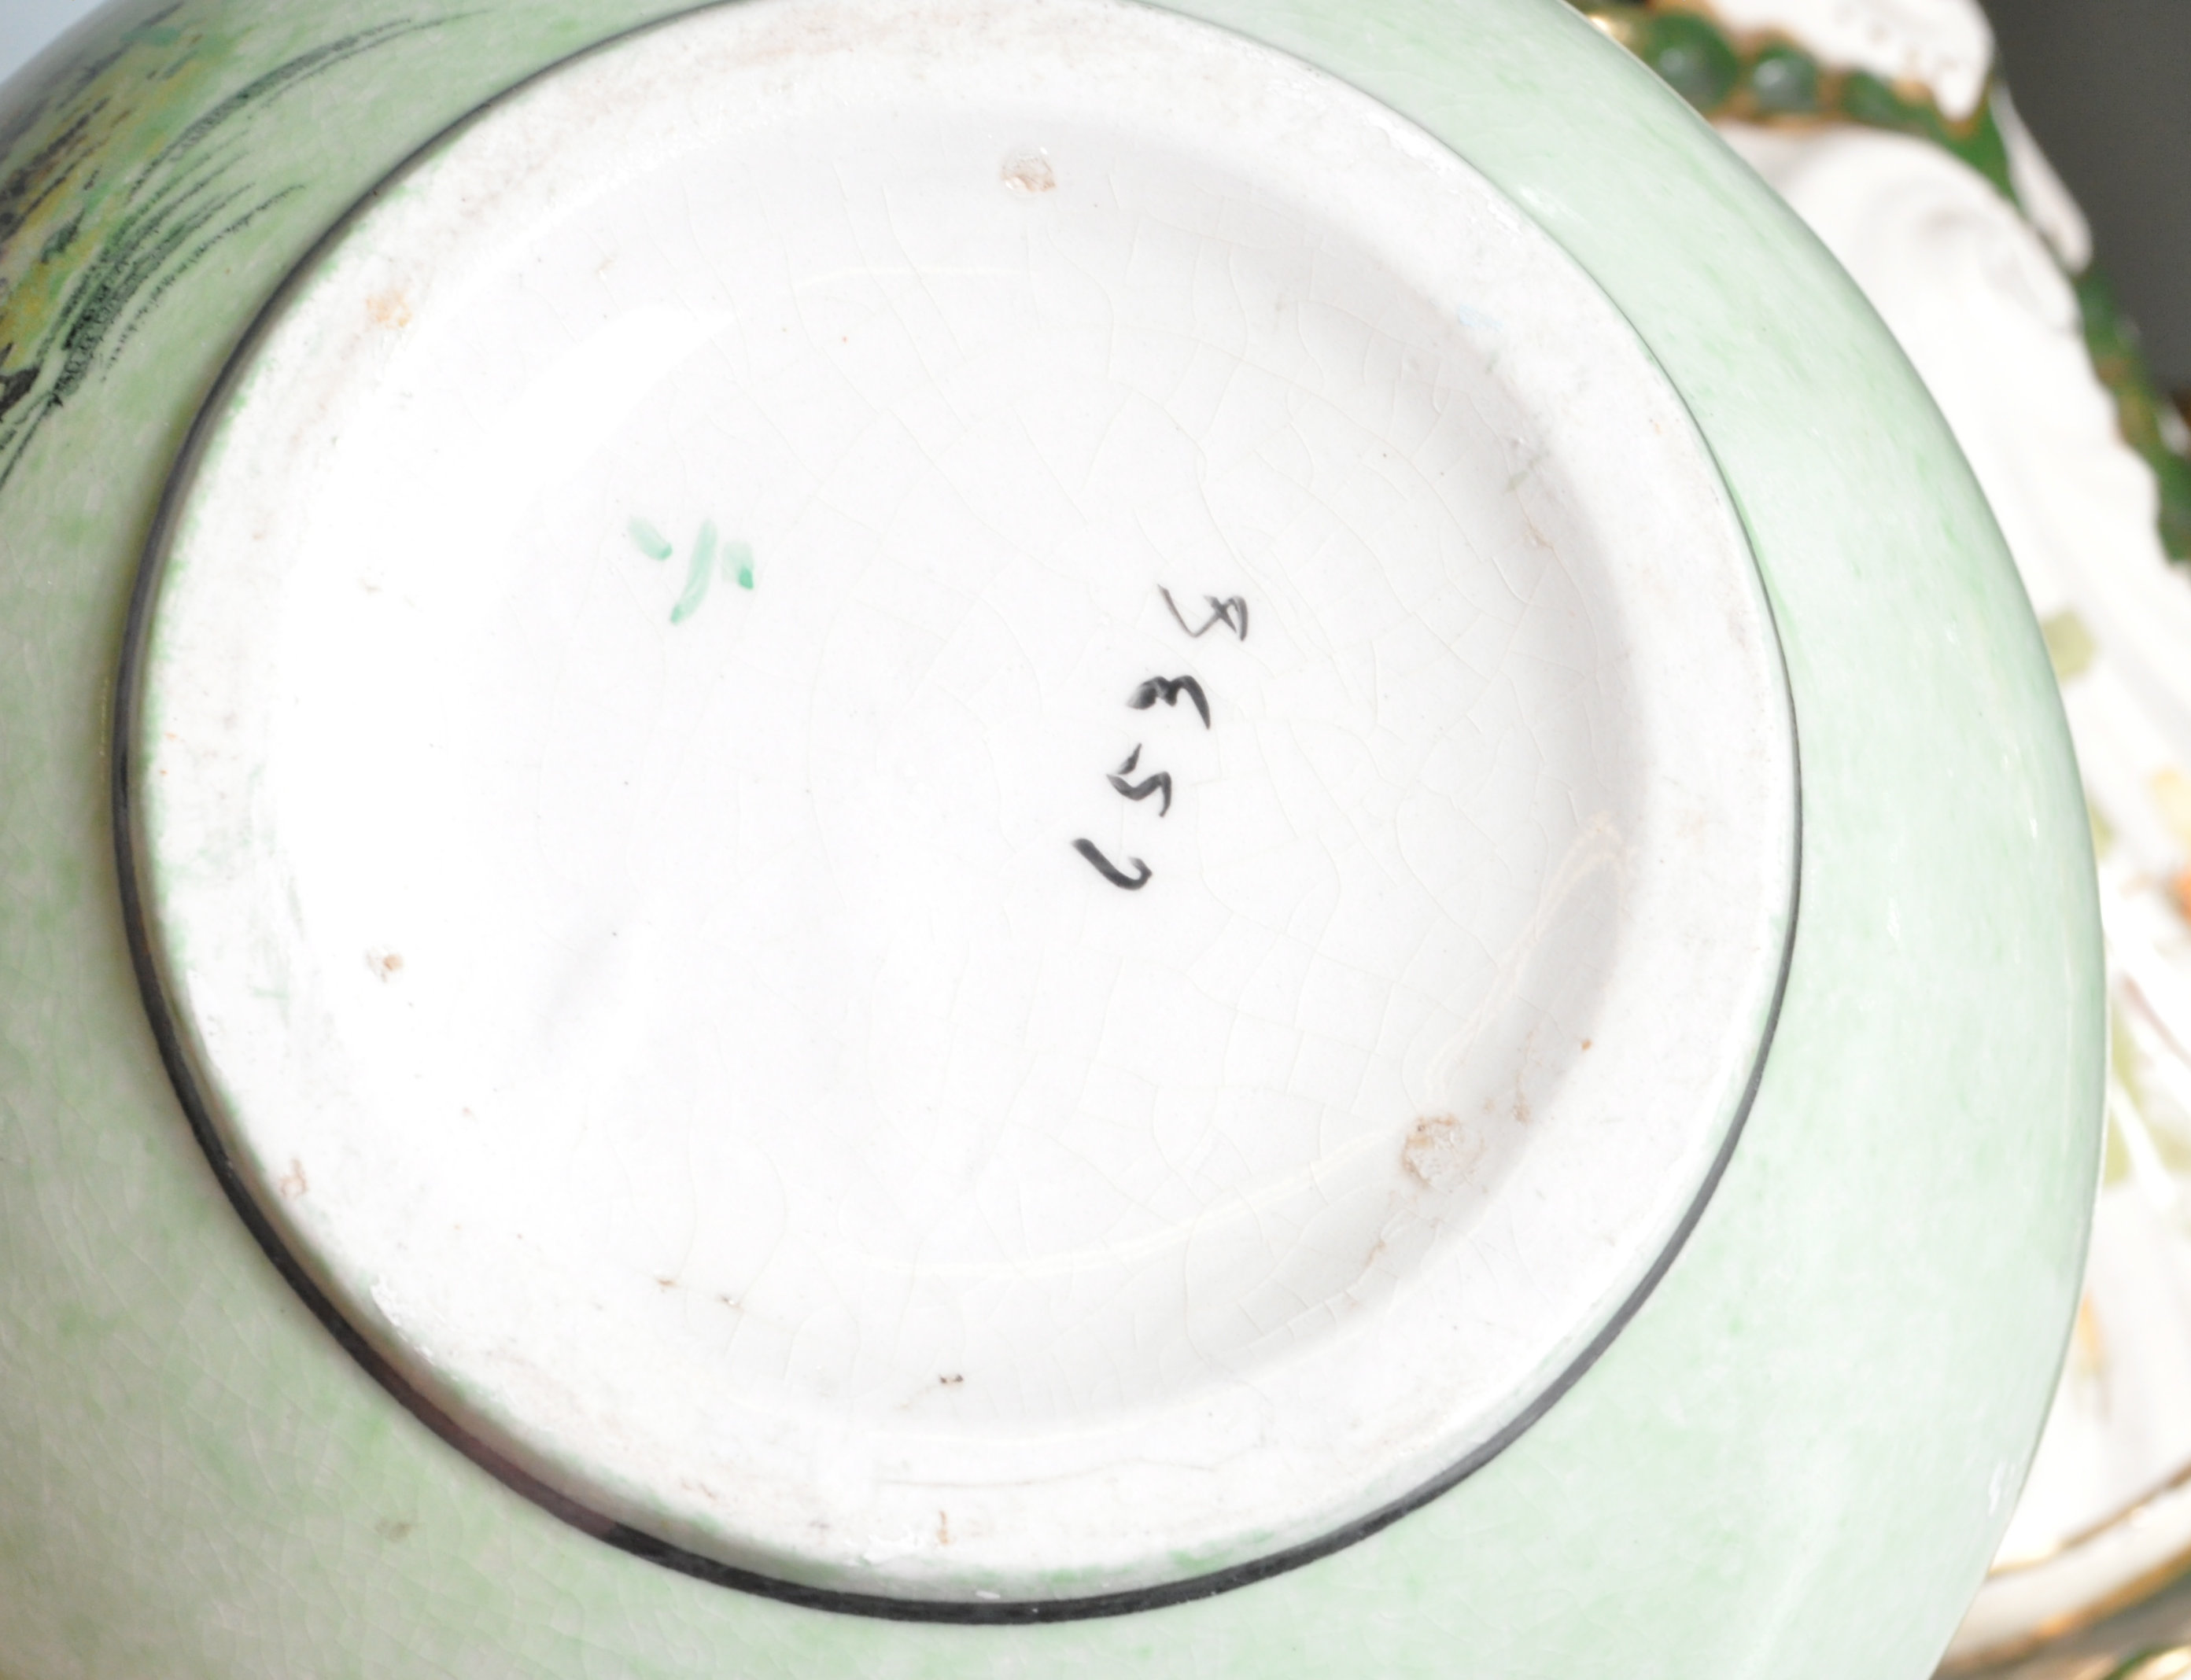 COLLECTION OF VINTAGE 20TH CENTURY CERAMICS - Image 3 of 10